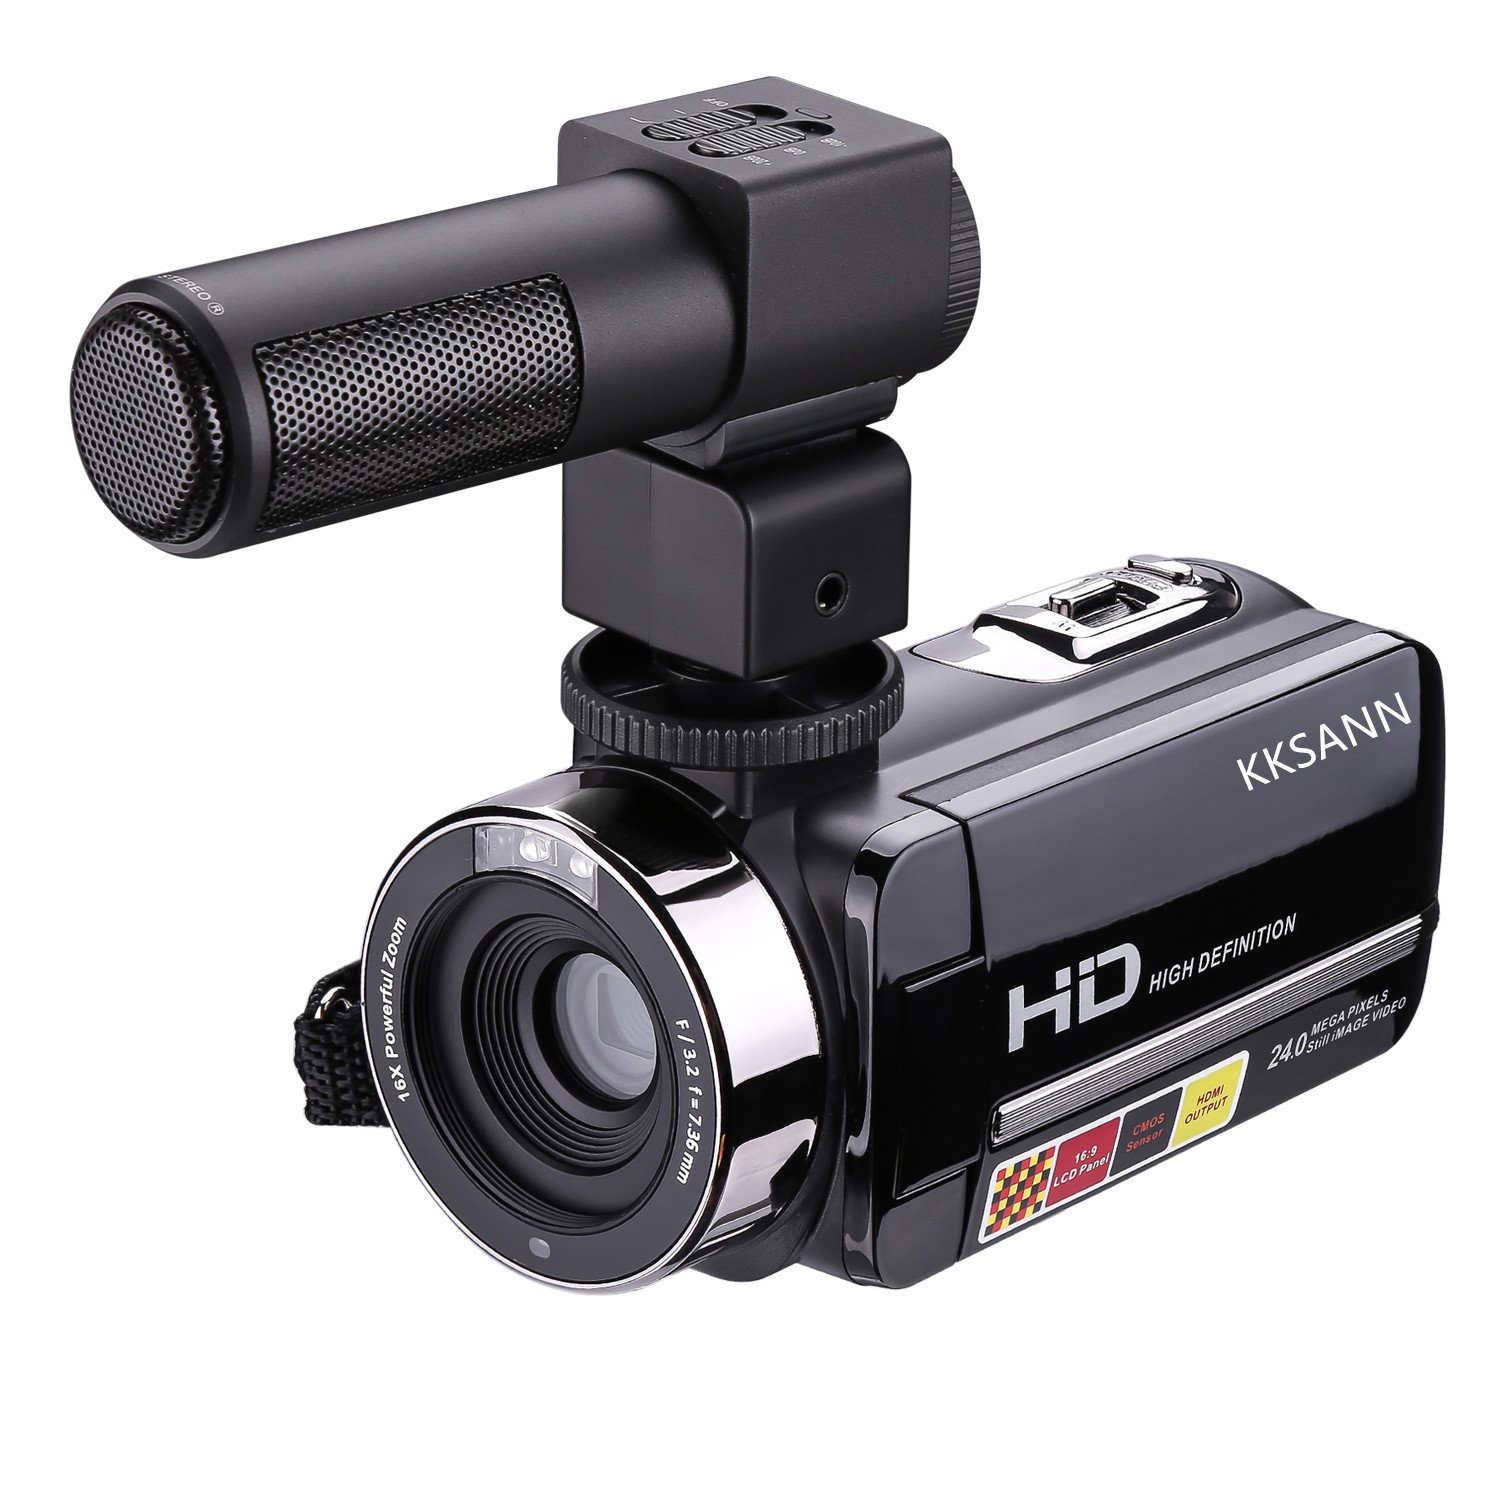 KKSANN Portable Video Camcorder with 3 Inch LCD HDV Touch Screen Microphone and1080P 16X Digital Zoom Camcorder  HDV-301Msion